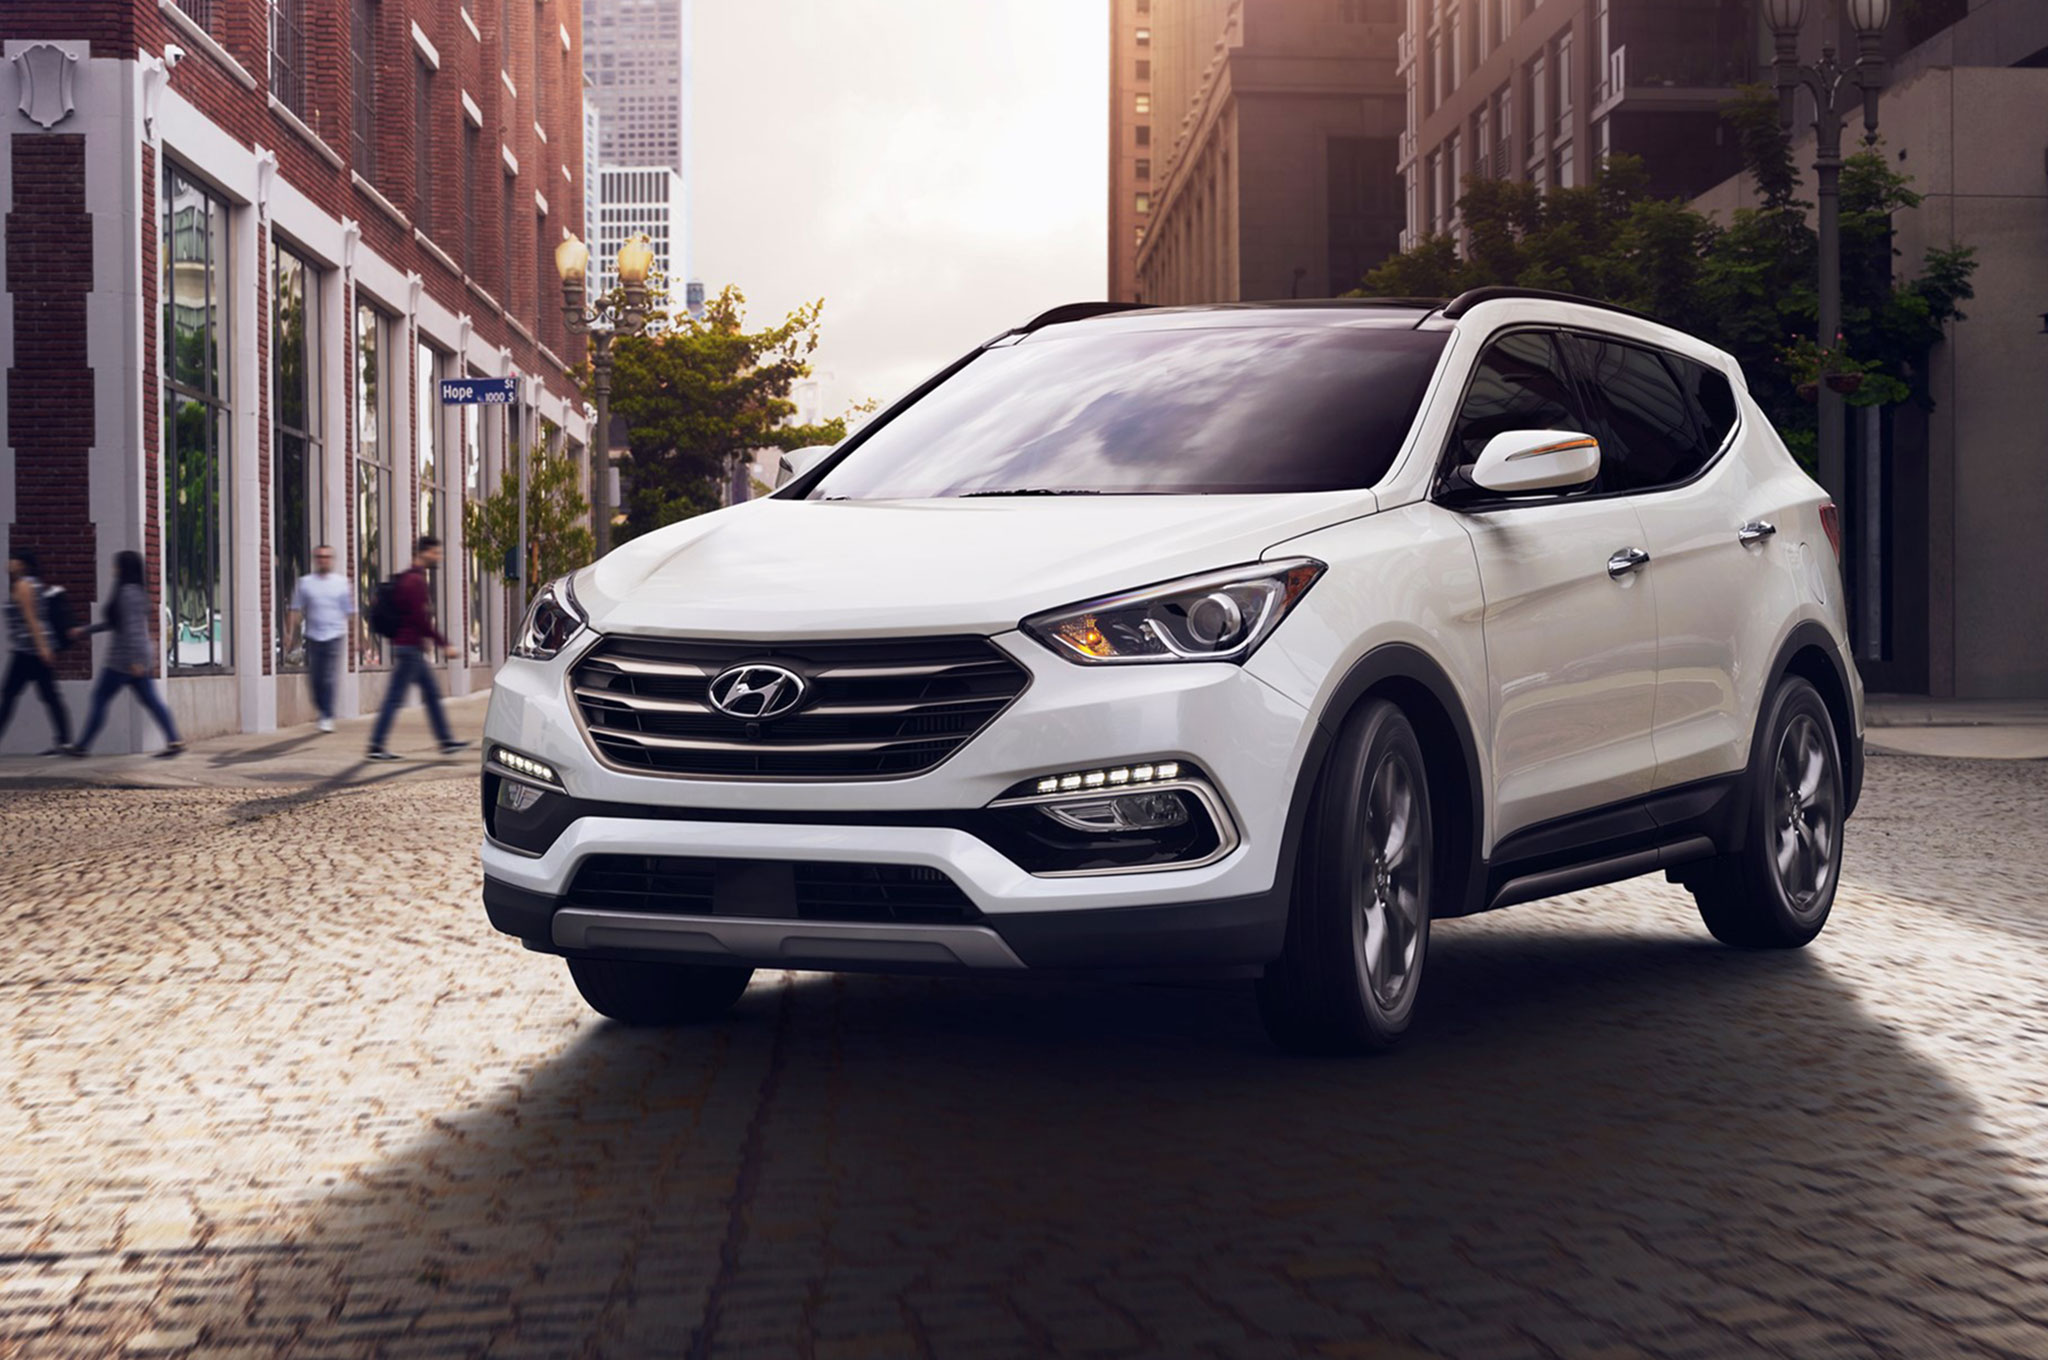 2013 Hyundai Santa Fe Sport Named One of Wards 10 Best Interiors